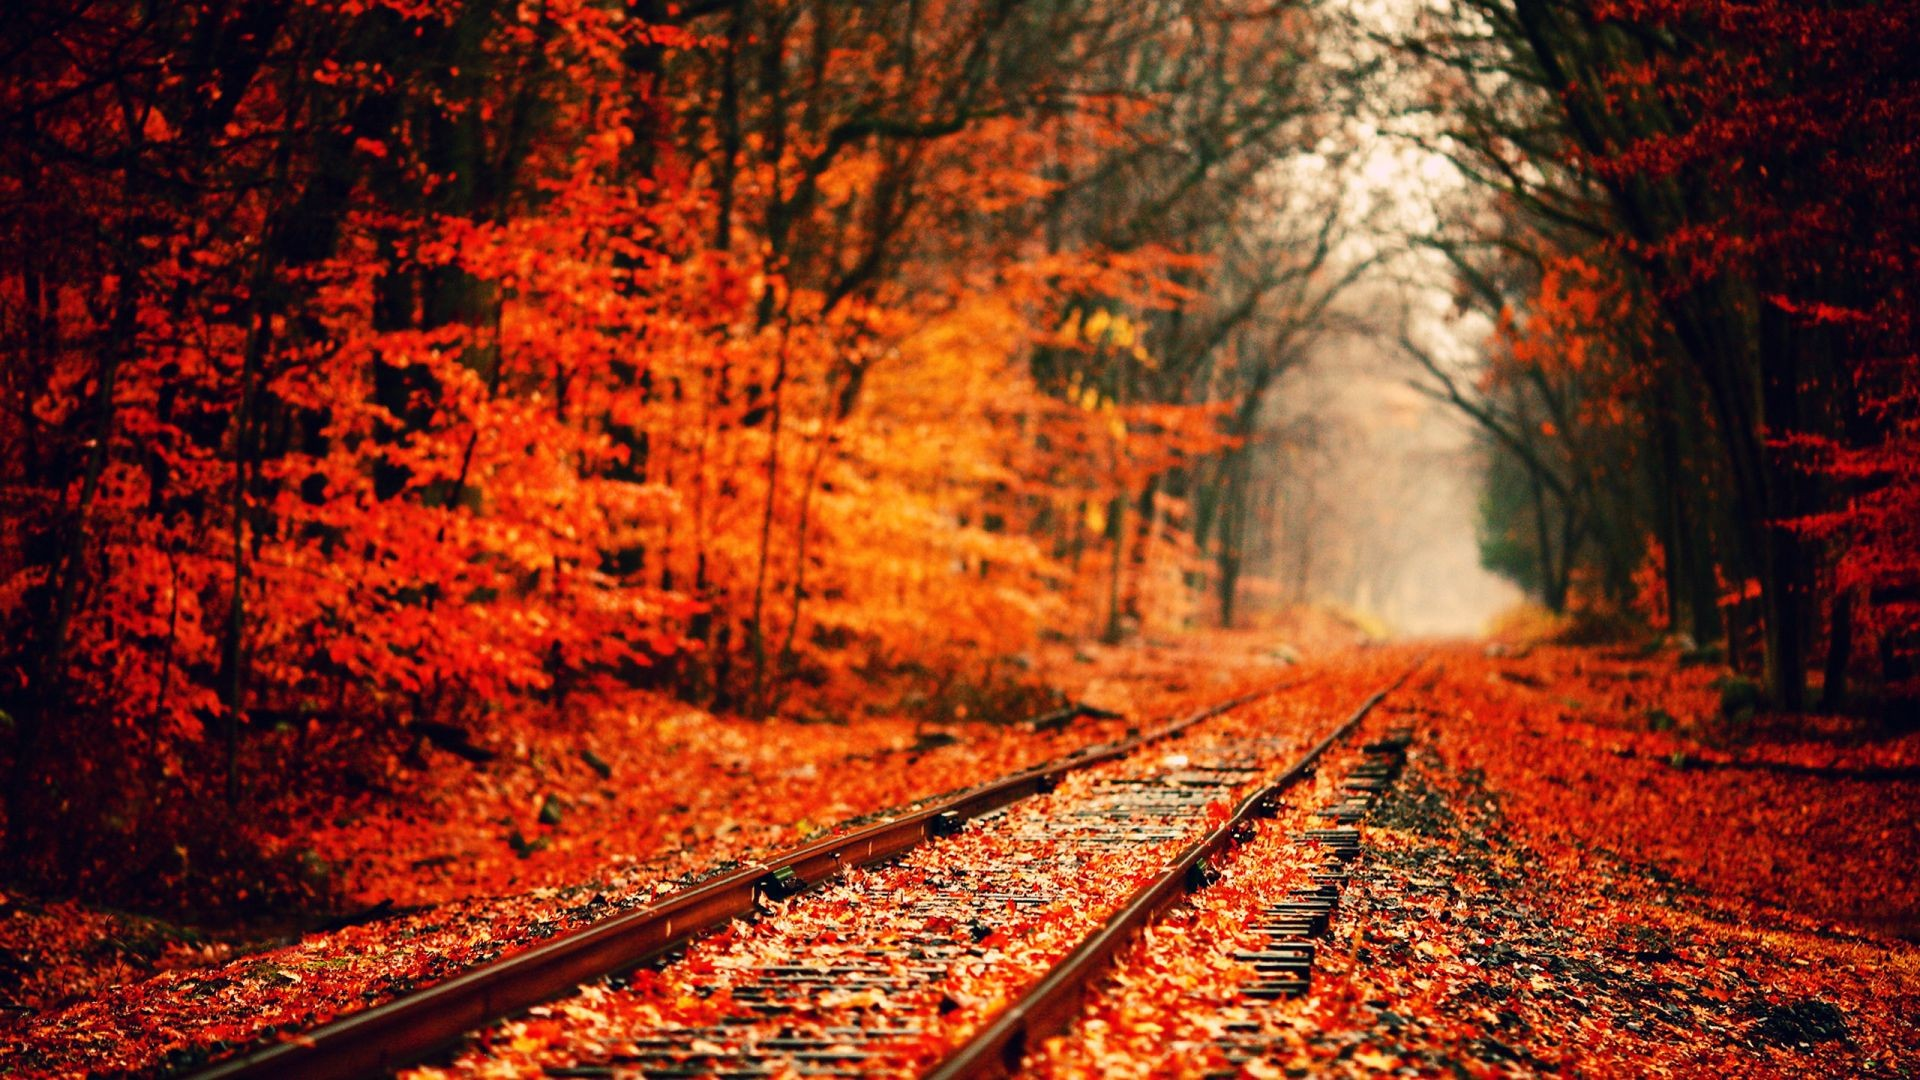 1920x1080 Autumn Tumblr Wallpaper Background Ypz Px 41447 KB Nature Cute Desktop Fall